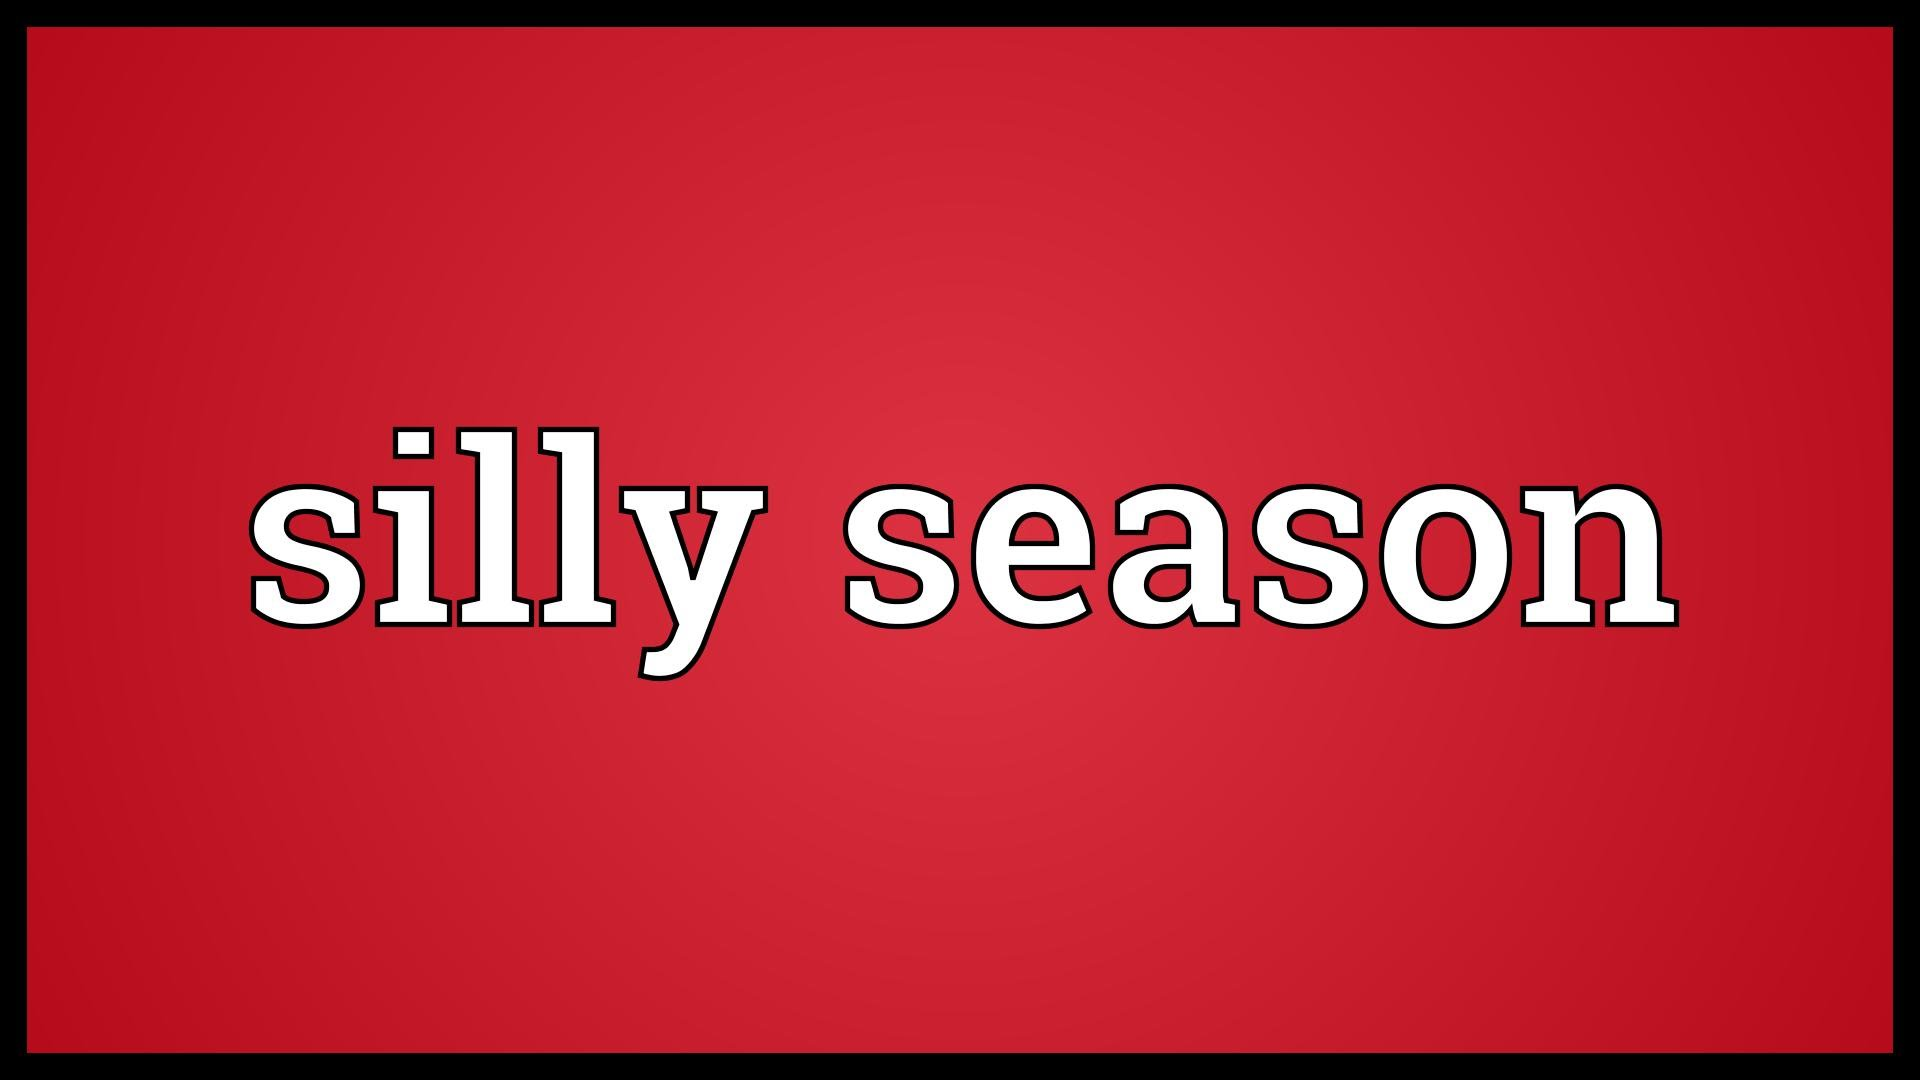 The Silly Season